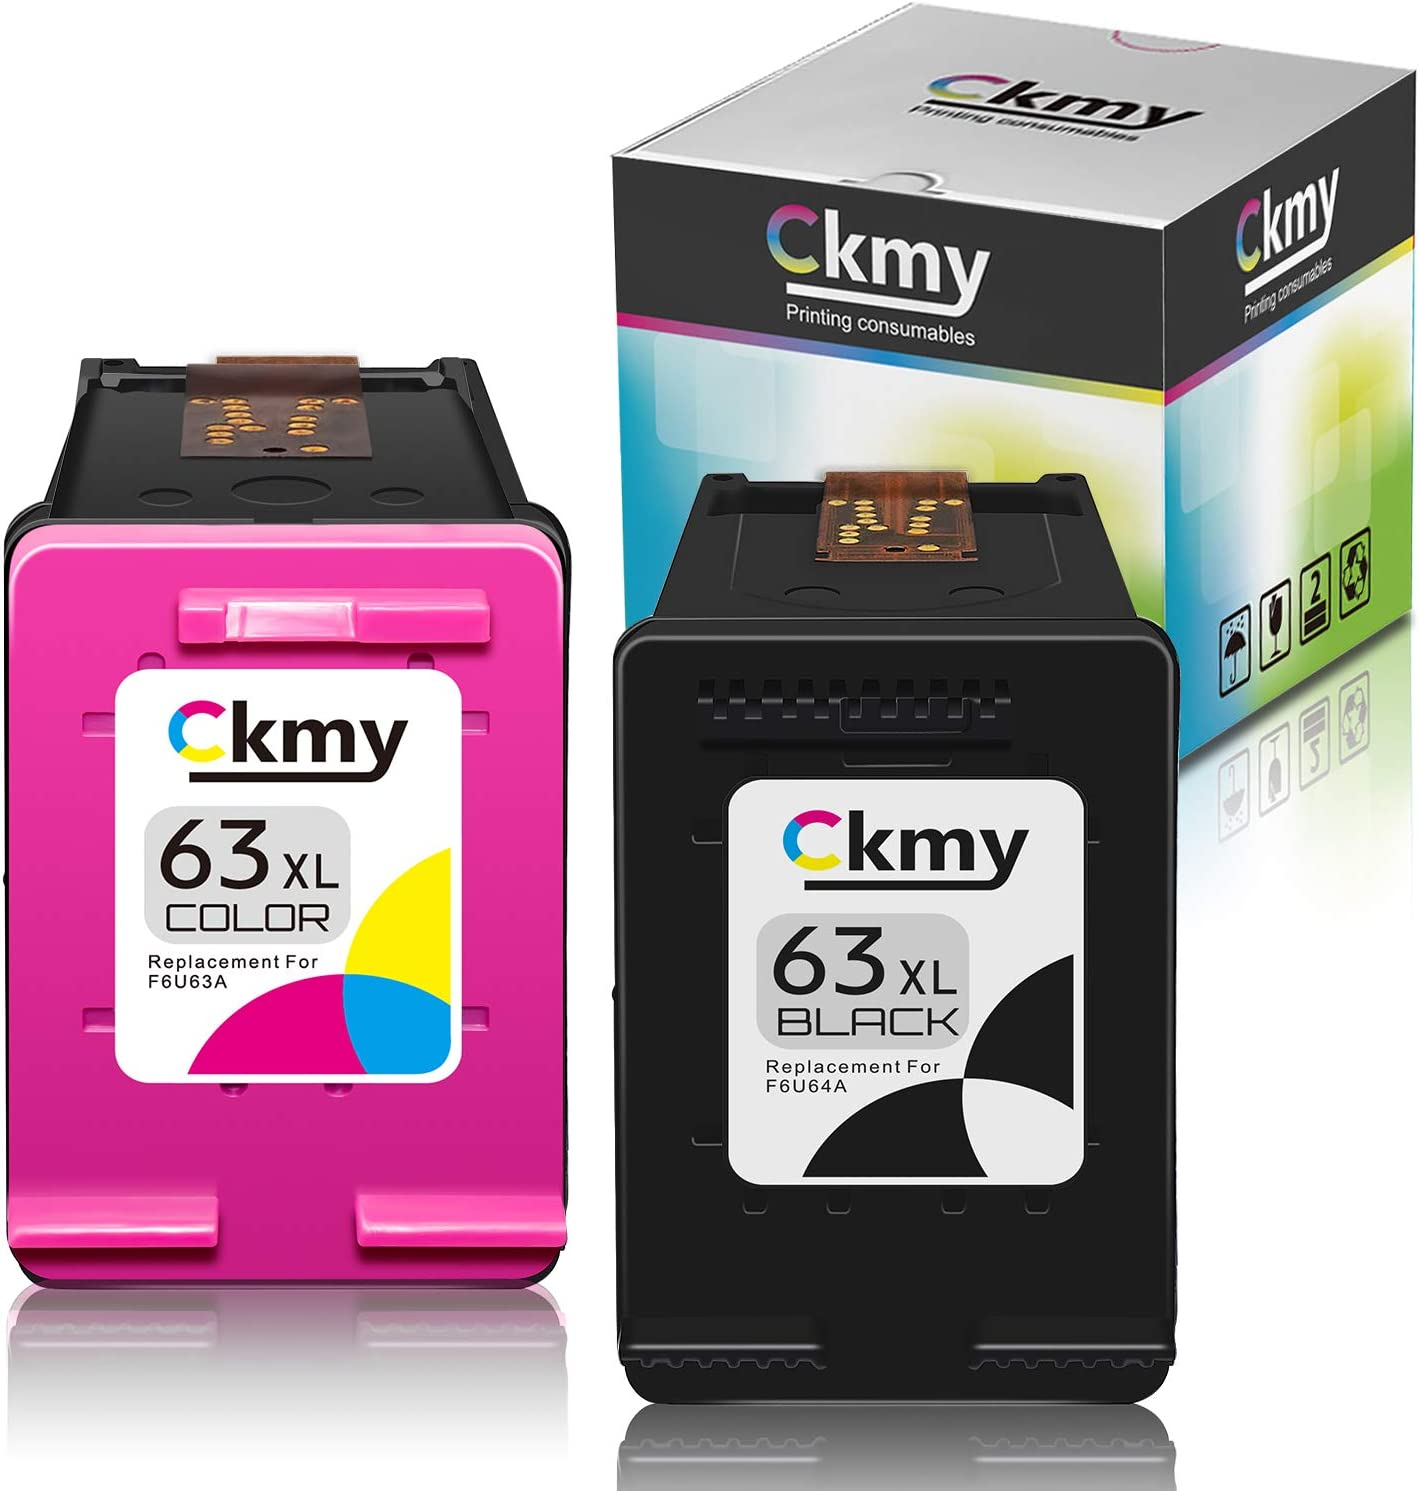 CKMY 63XL Remanufactured Ink Cartridge Replacement for HP 63 XL to Use with OfficeJet 5255 3830 3834 4650 4655 4652 DeskJet 1112 3630 3634 2132 3639 3636 Envy 4520 Printer (Black Tri-Color) 2-Pack